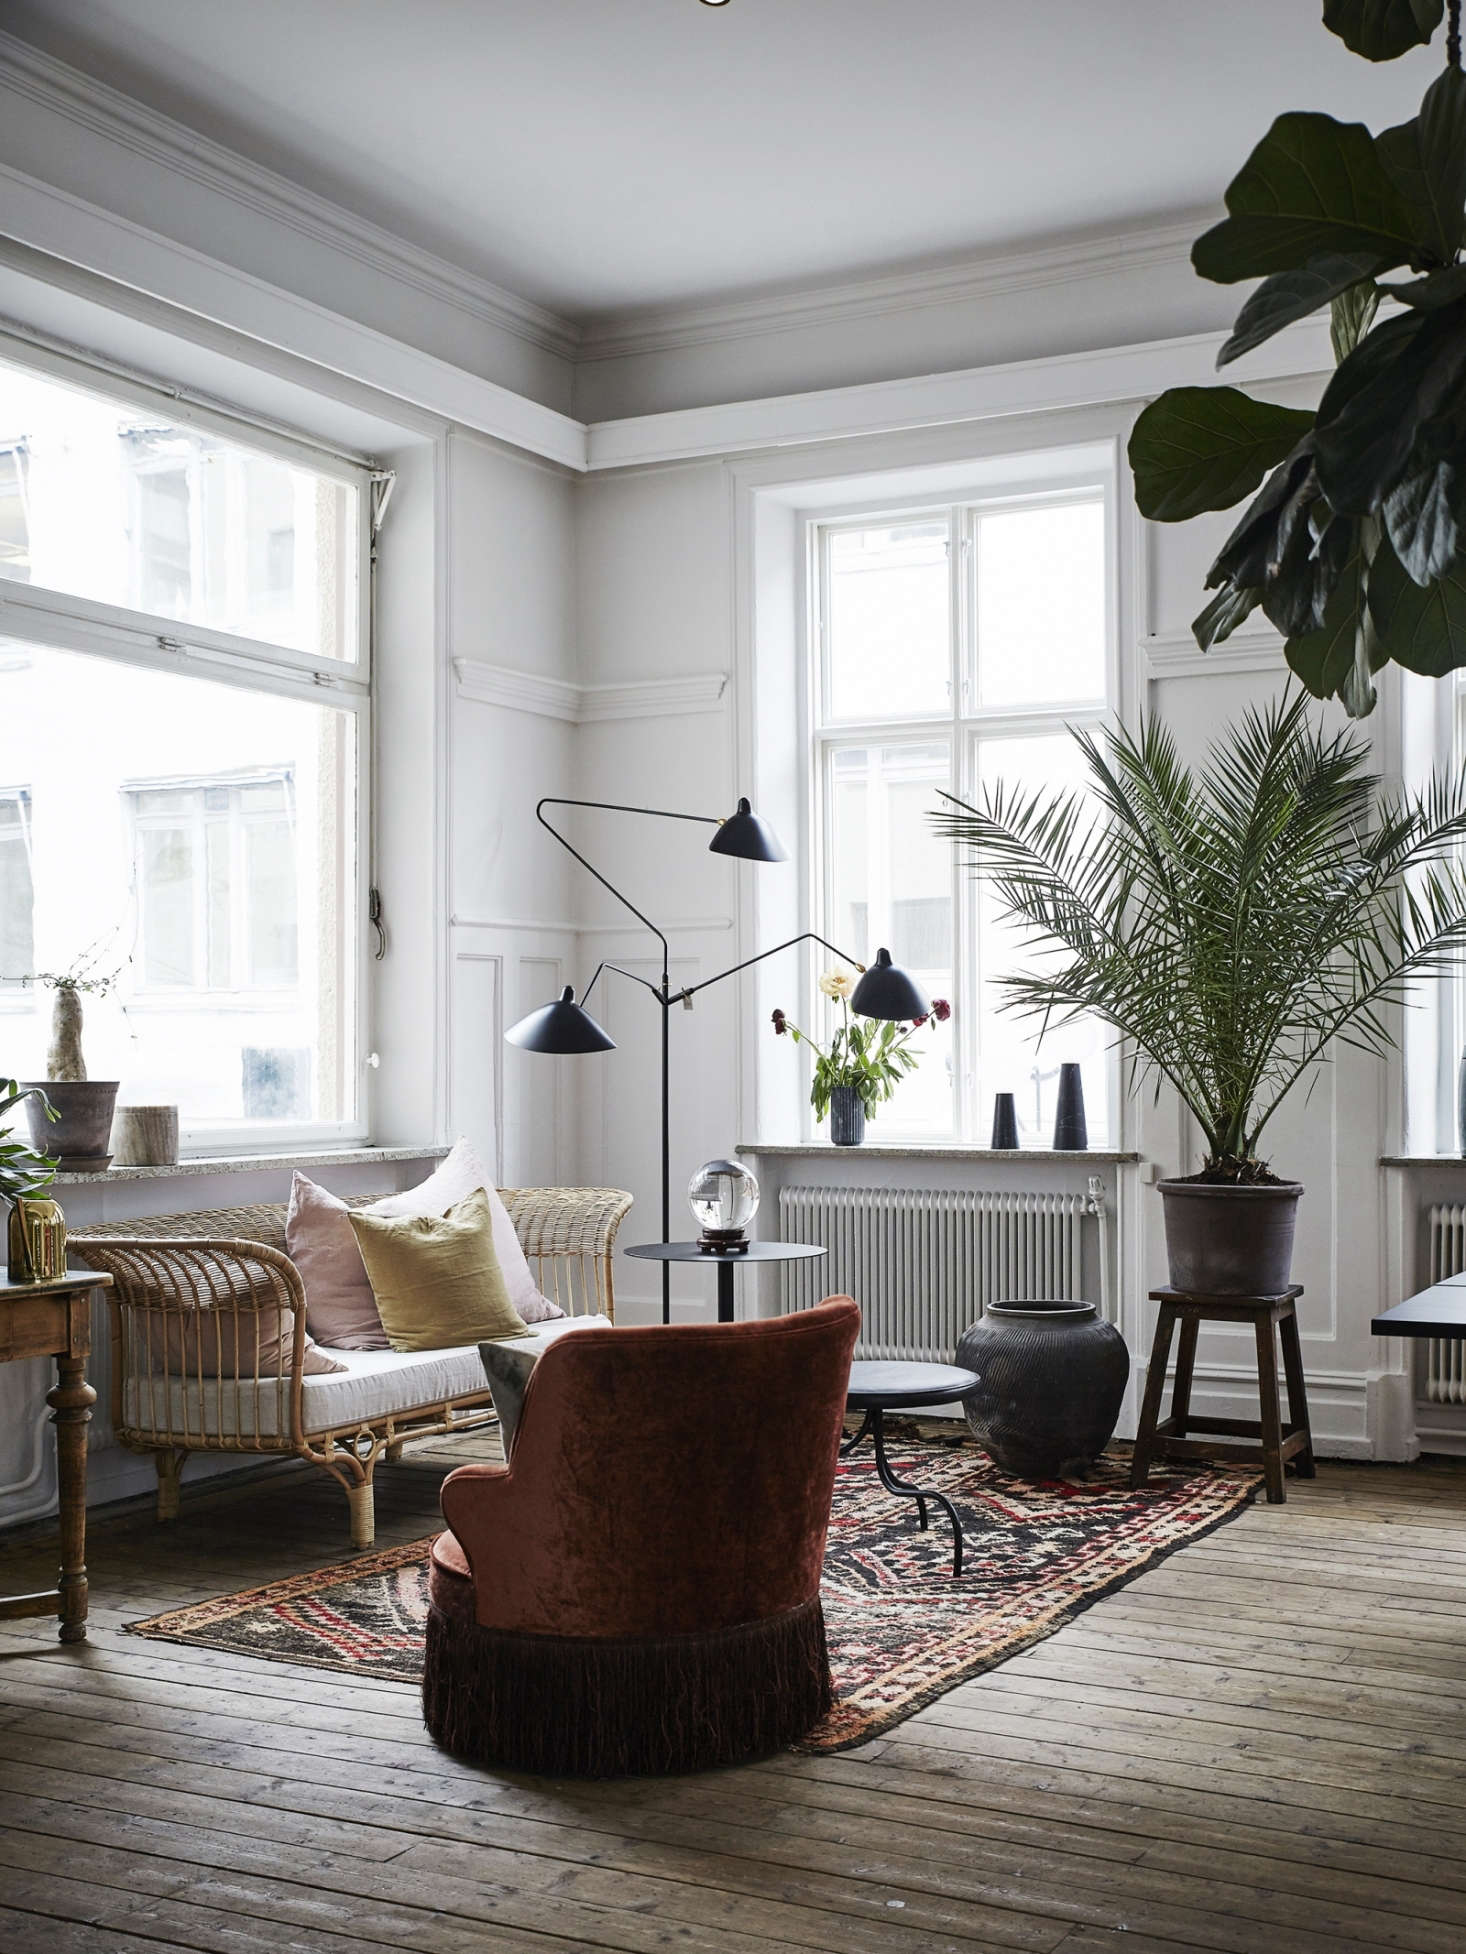 An intimate grouping of furniture, plants, and lighting at the Artilleriet apartment in Sweden has a dynamic circular flow. Photograph by Johanna Bradford,courtesy ofArtilleriet.